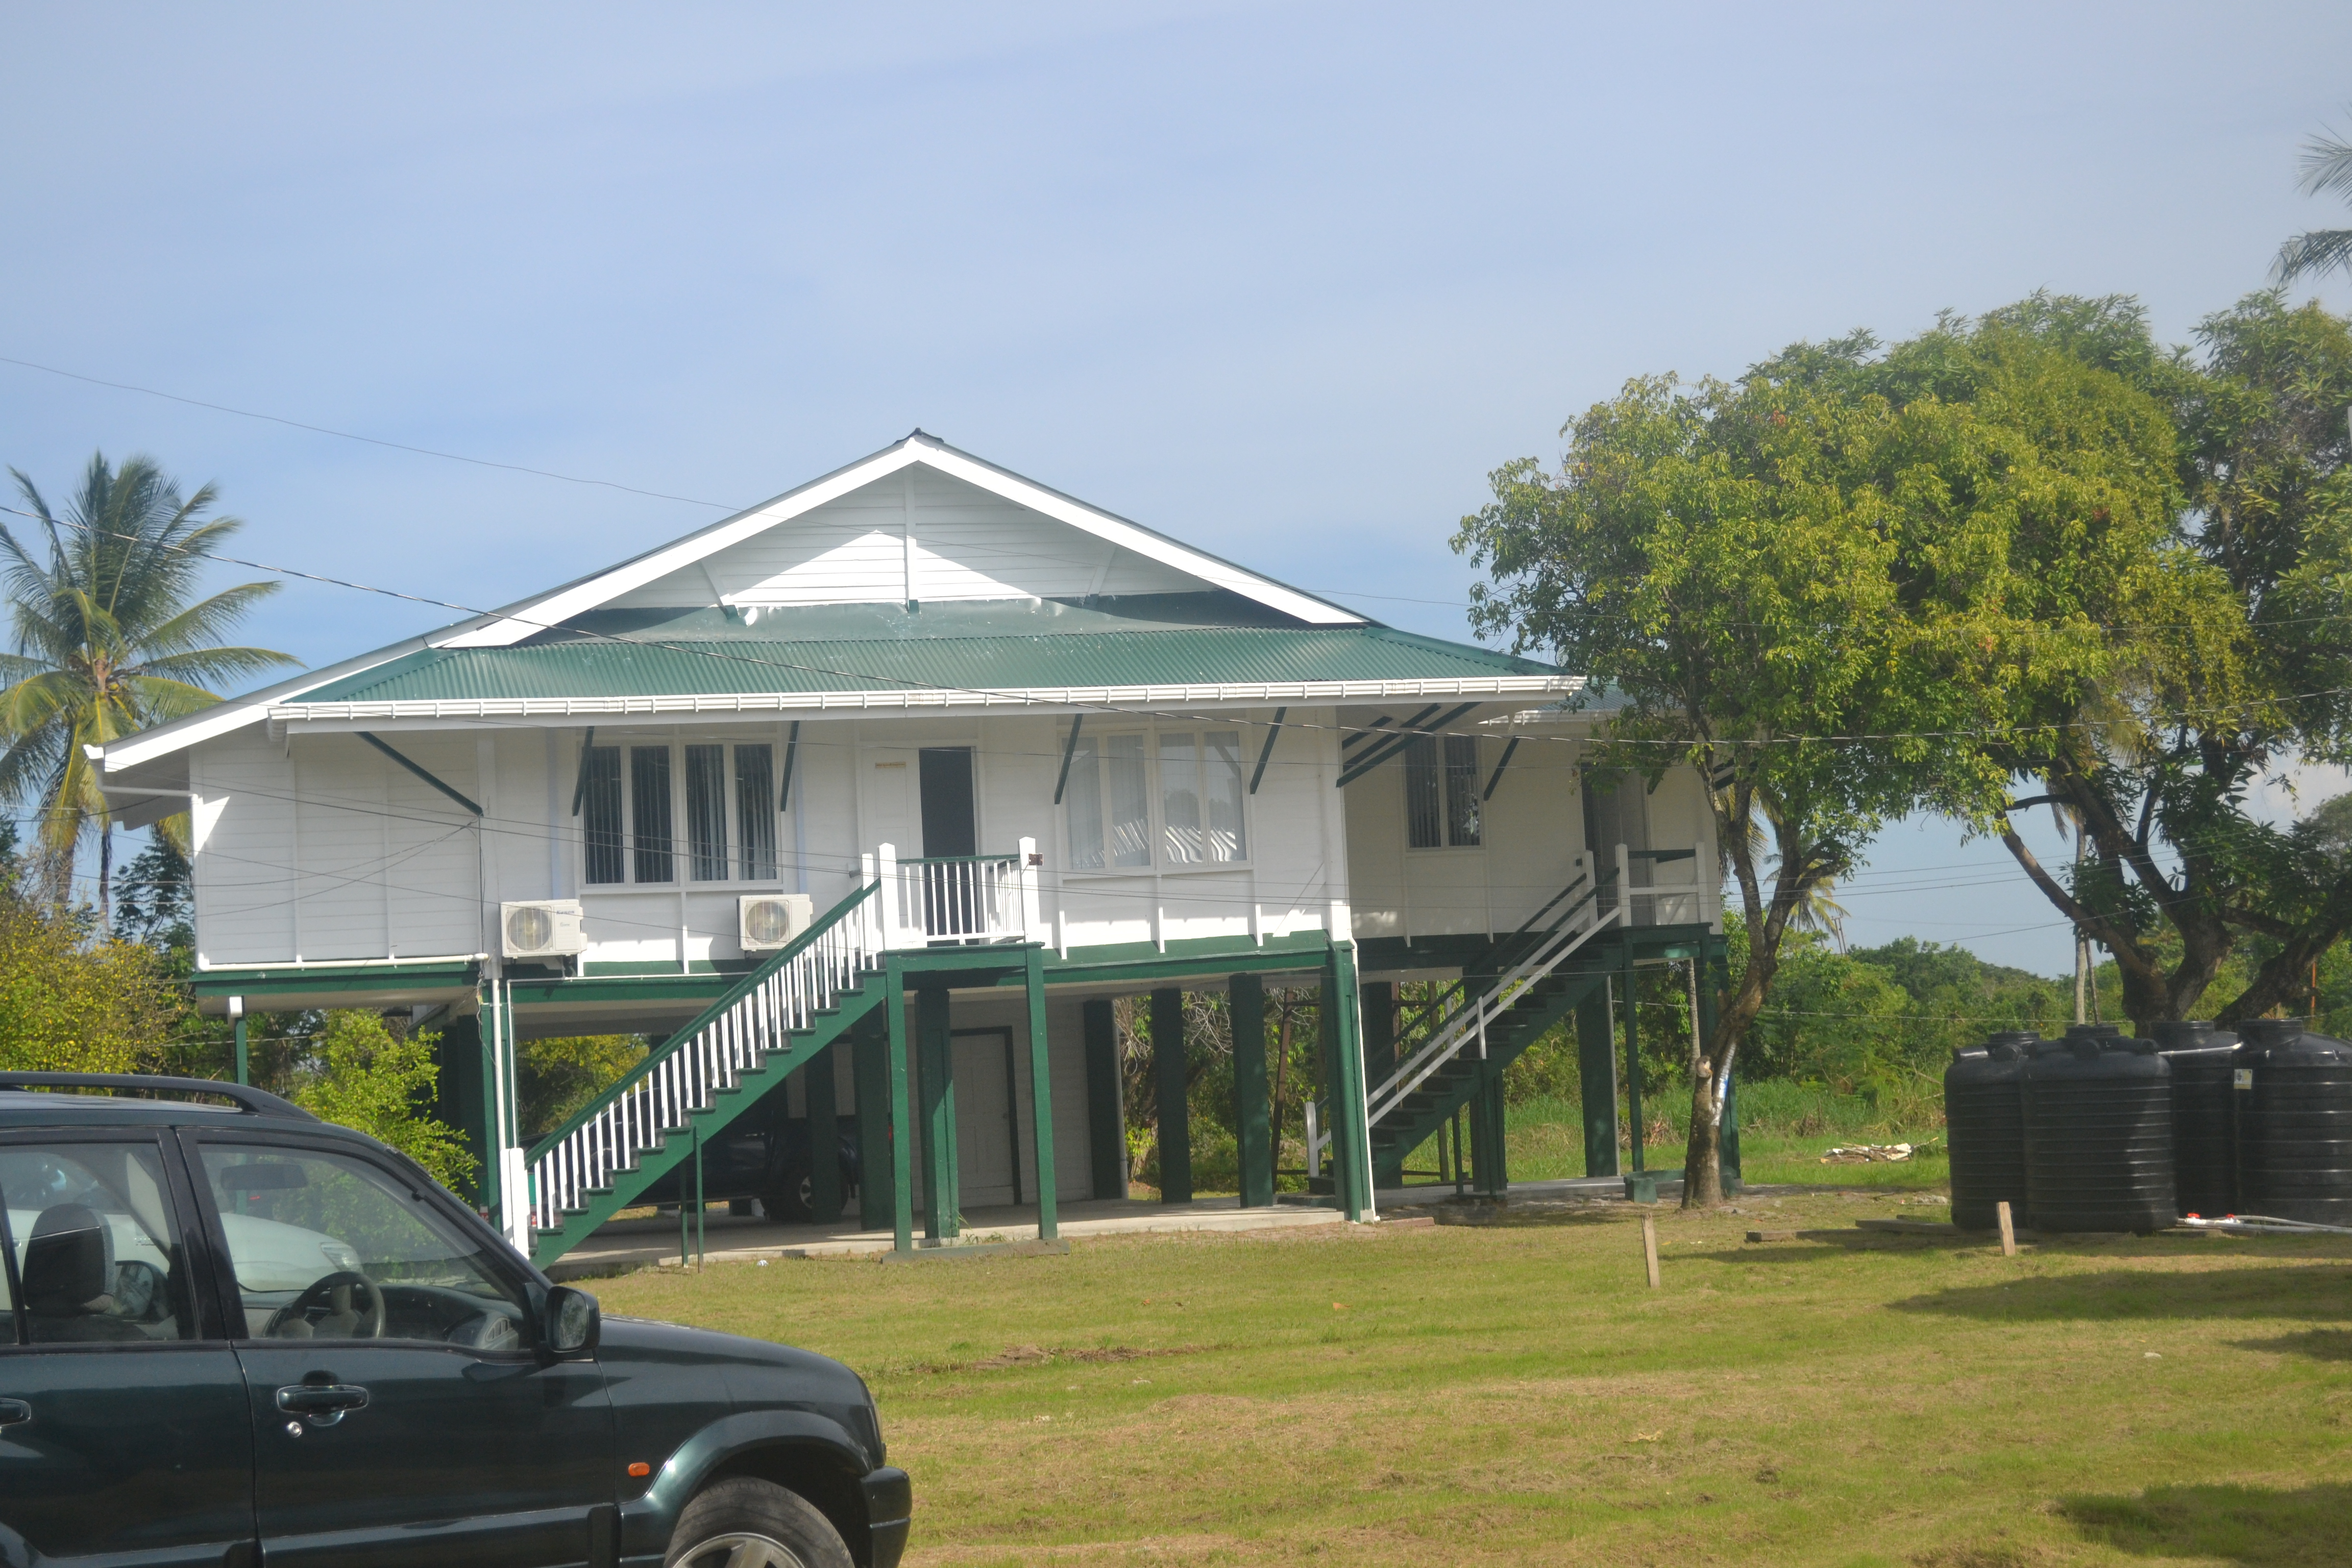 One of the buildings that now houses NDIA